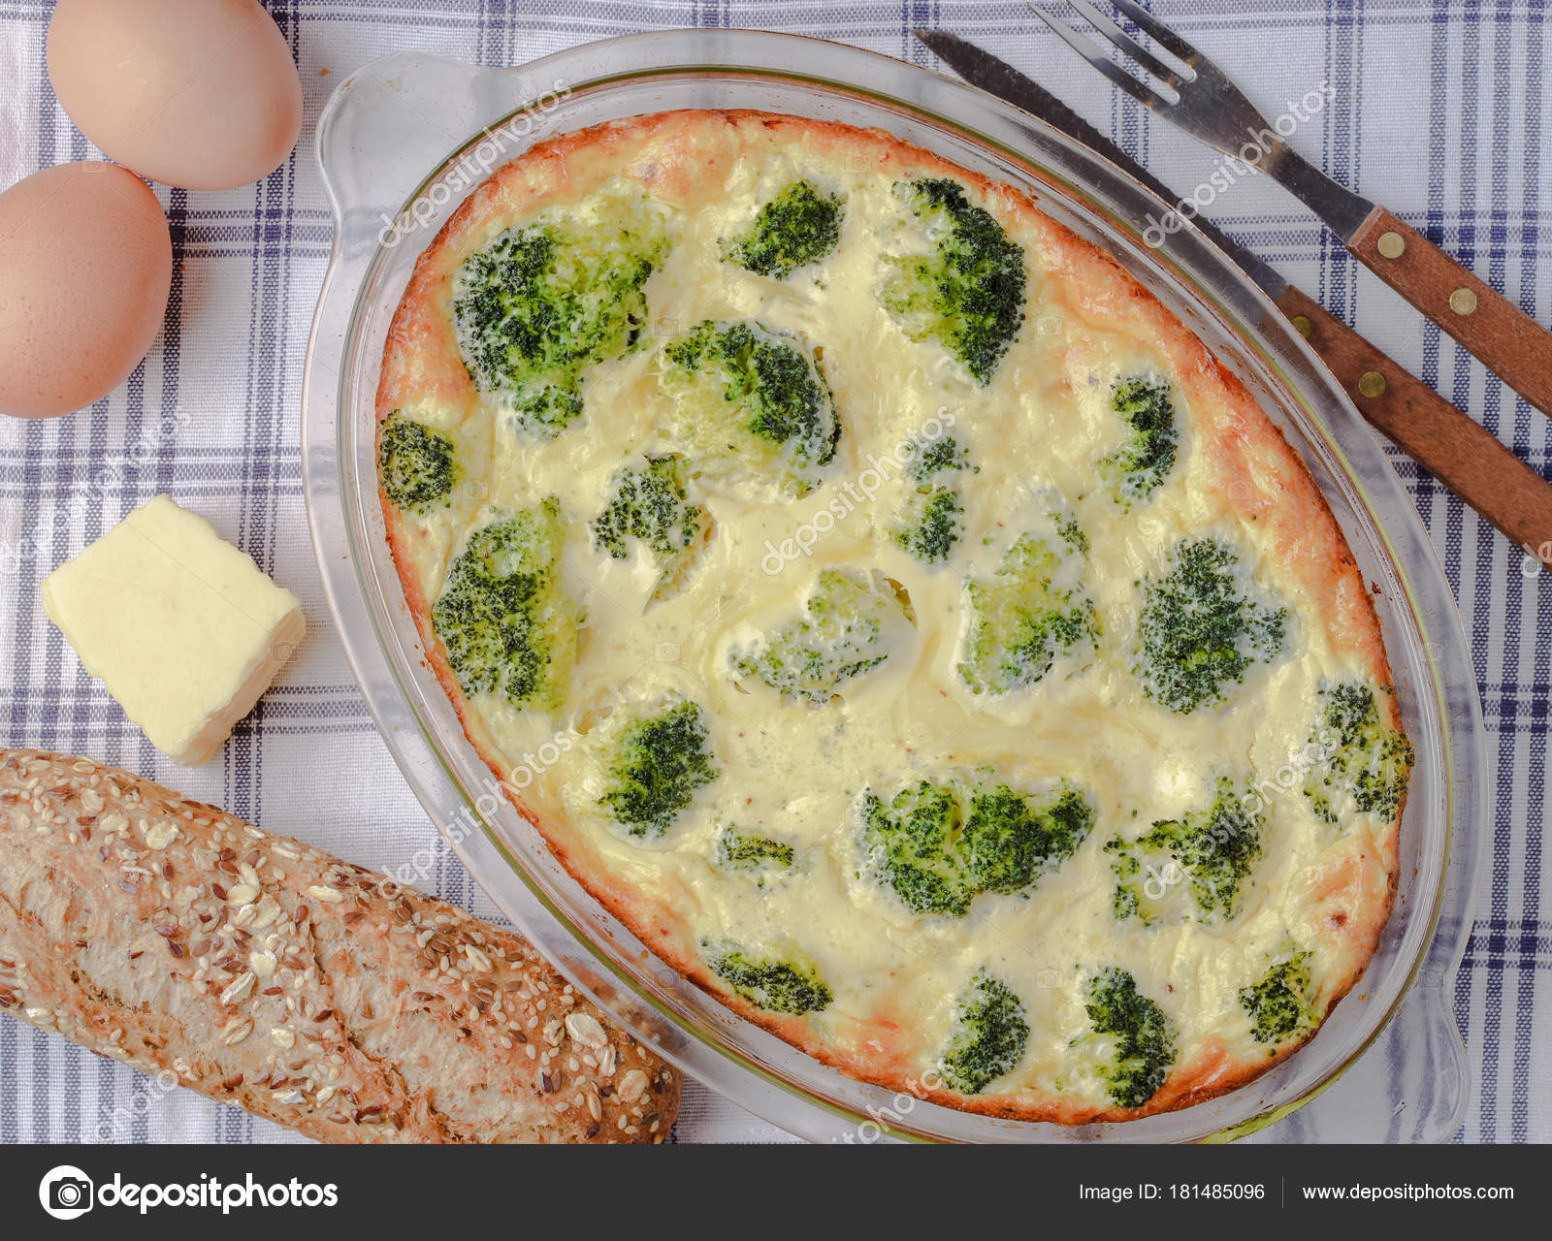 Vegetarian Casserole Casserole Diet Cheese Broccoli Recipe ..